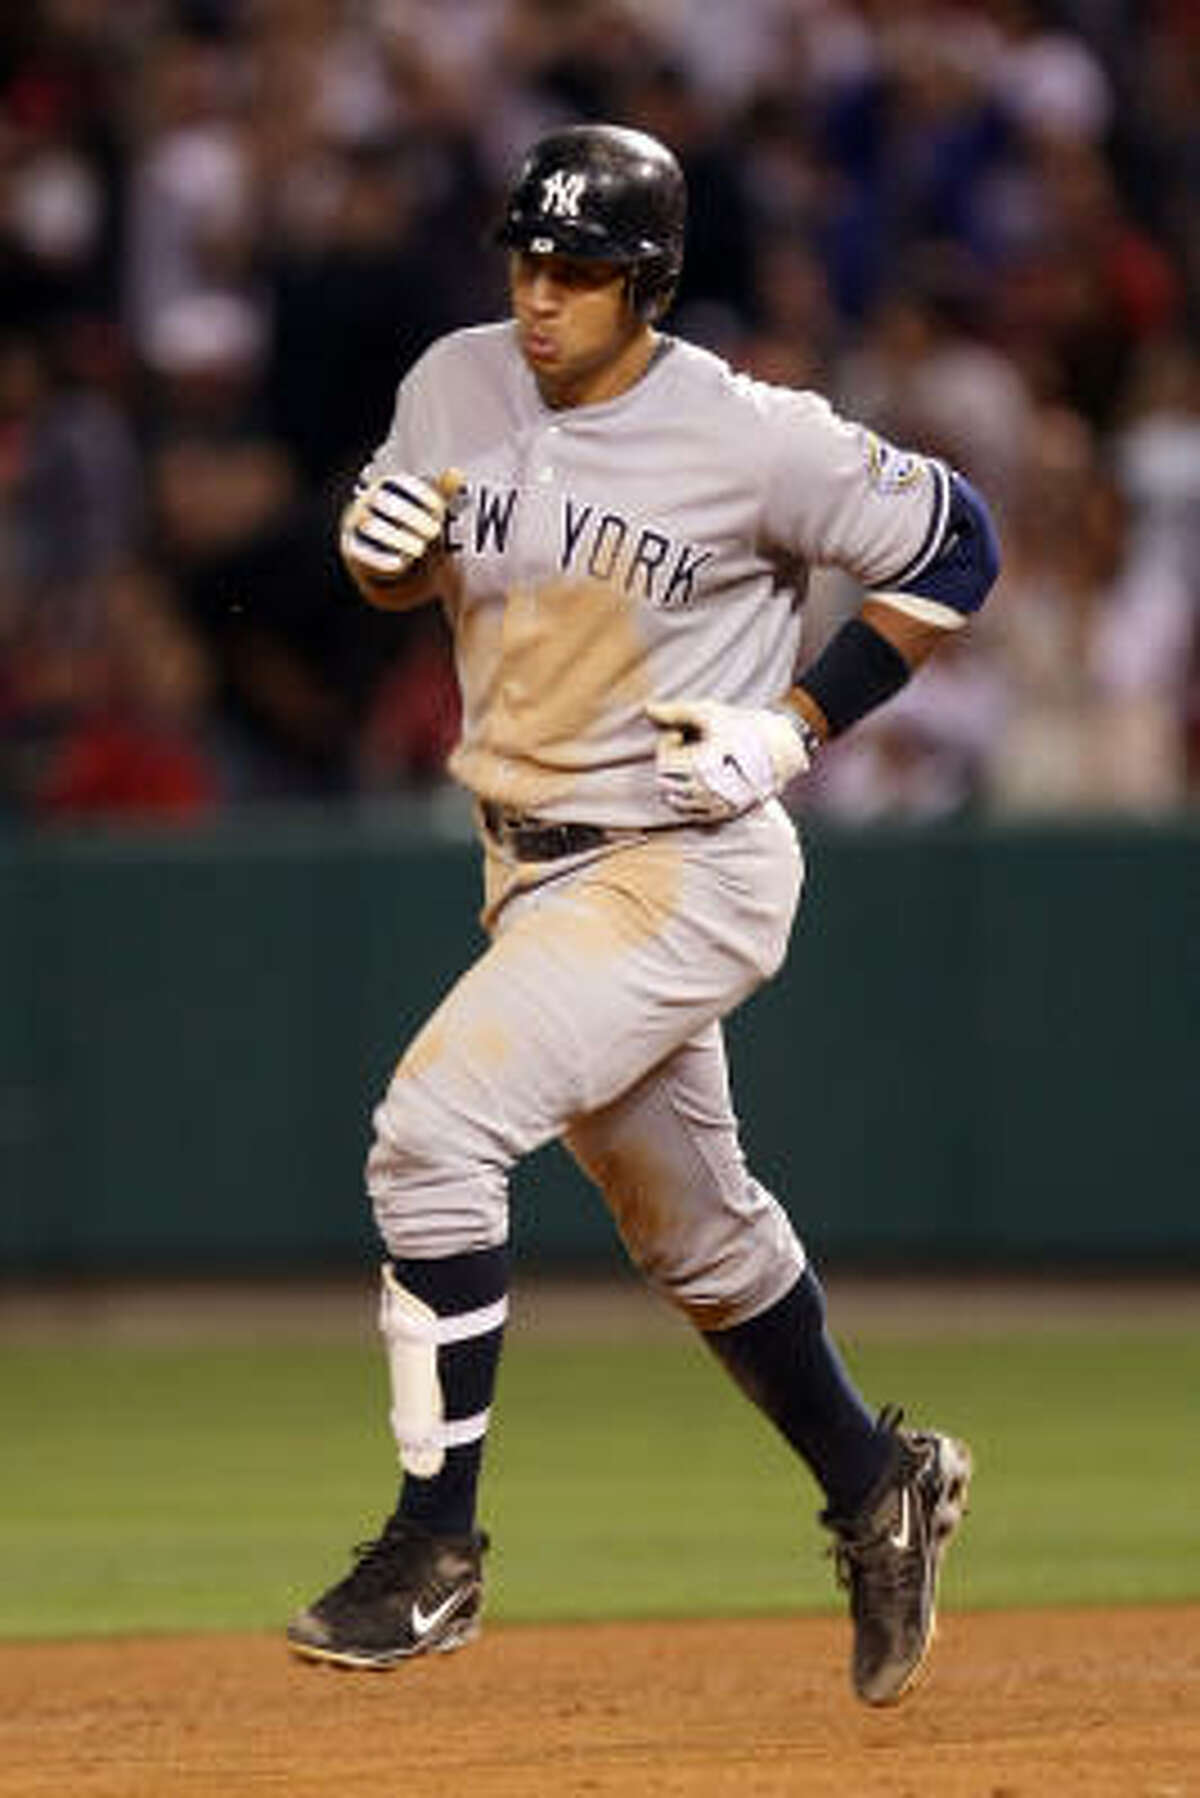 Alex Rodriguez Ex-wife Cynthia filed for divorce on 2008 citing